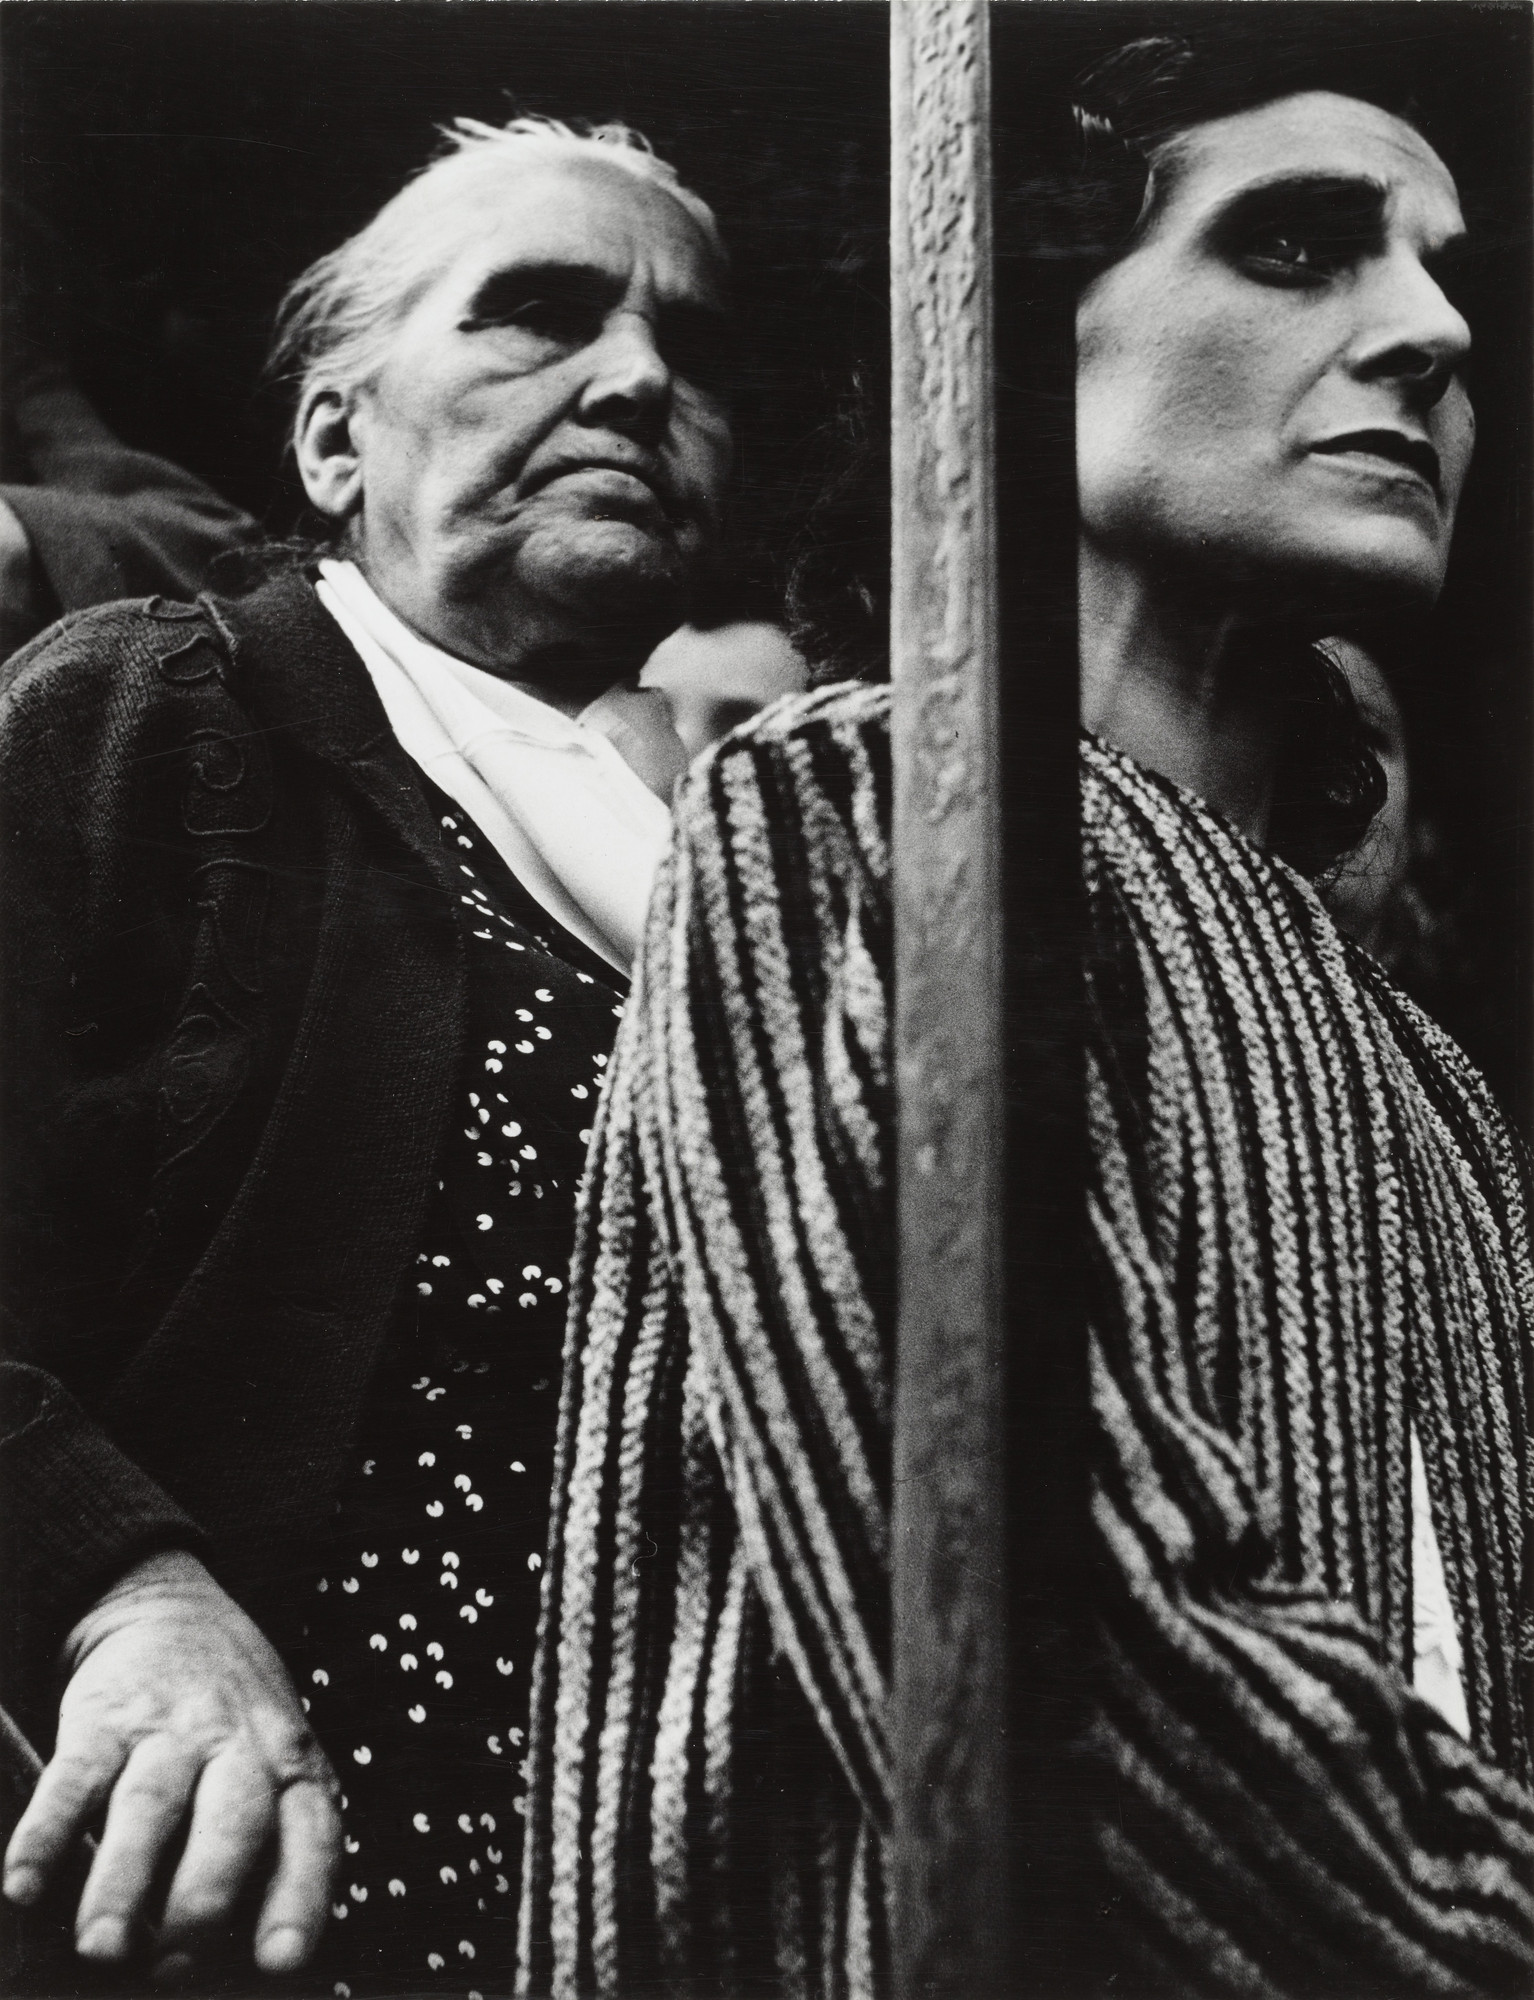 Lisette Model. World War II Rally, Lower East Side. 1942